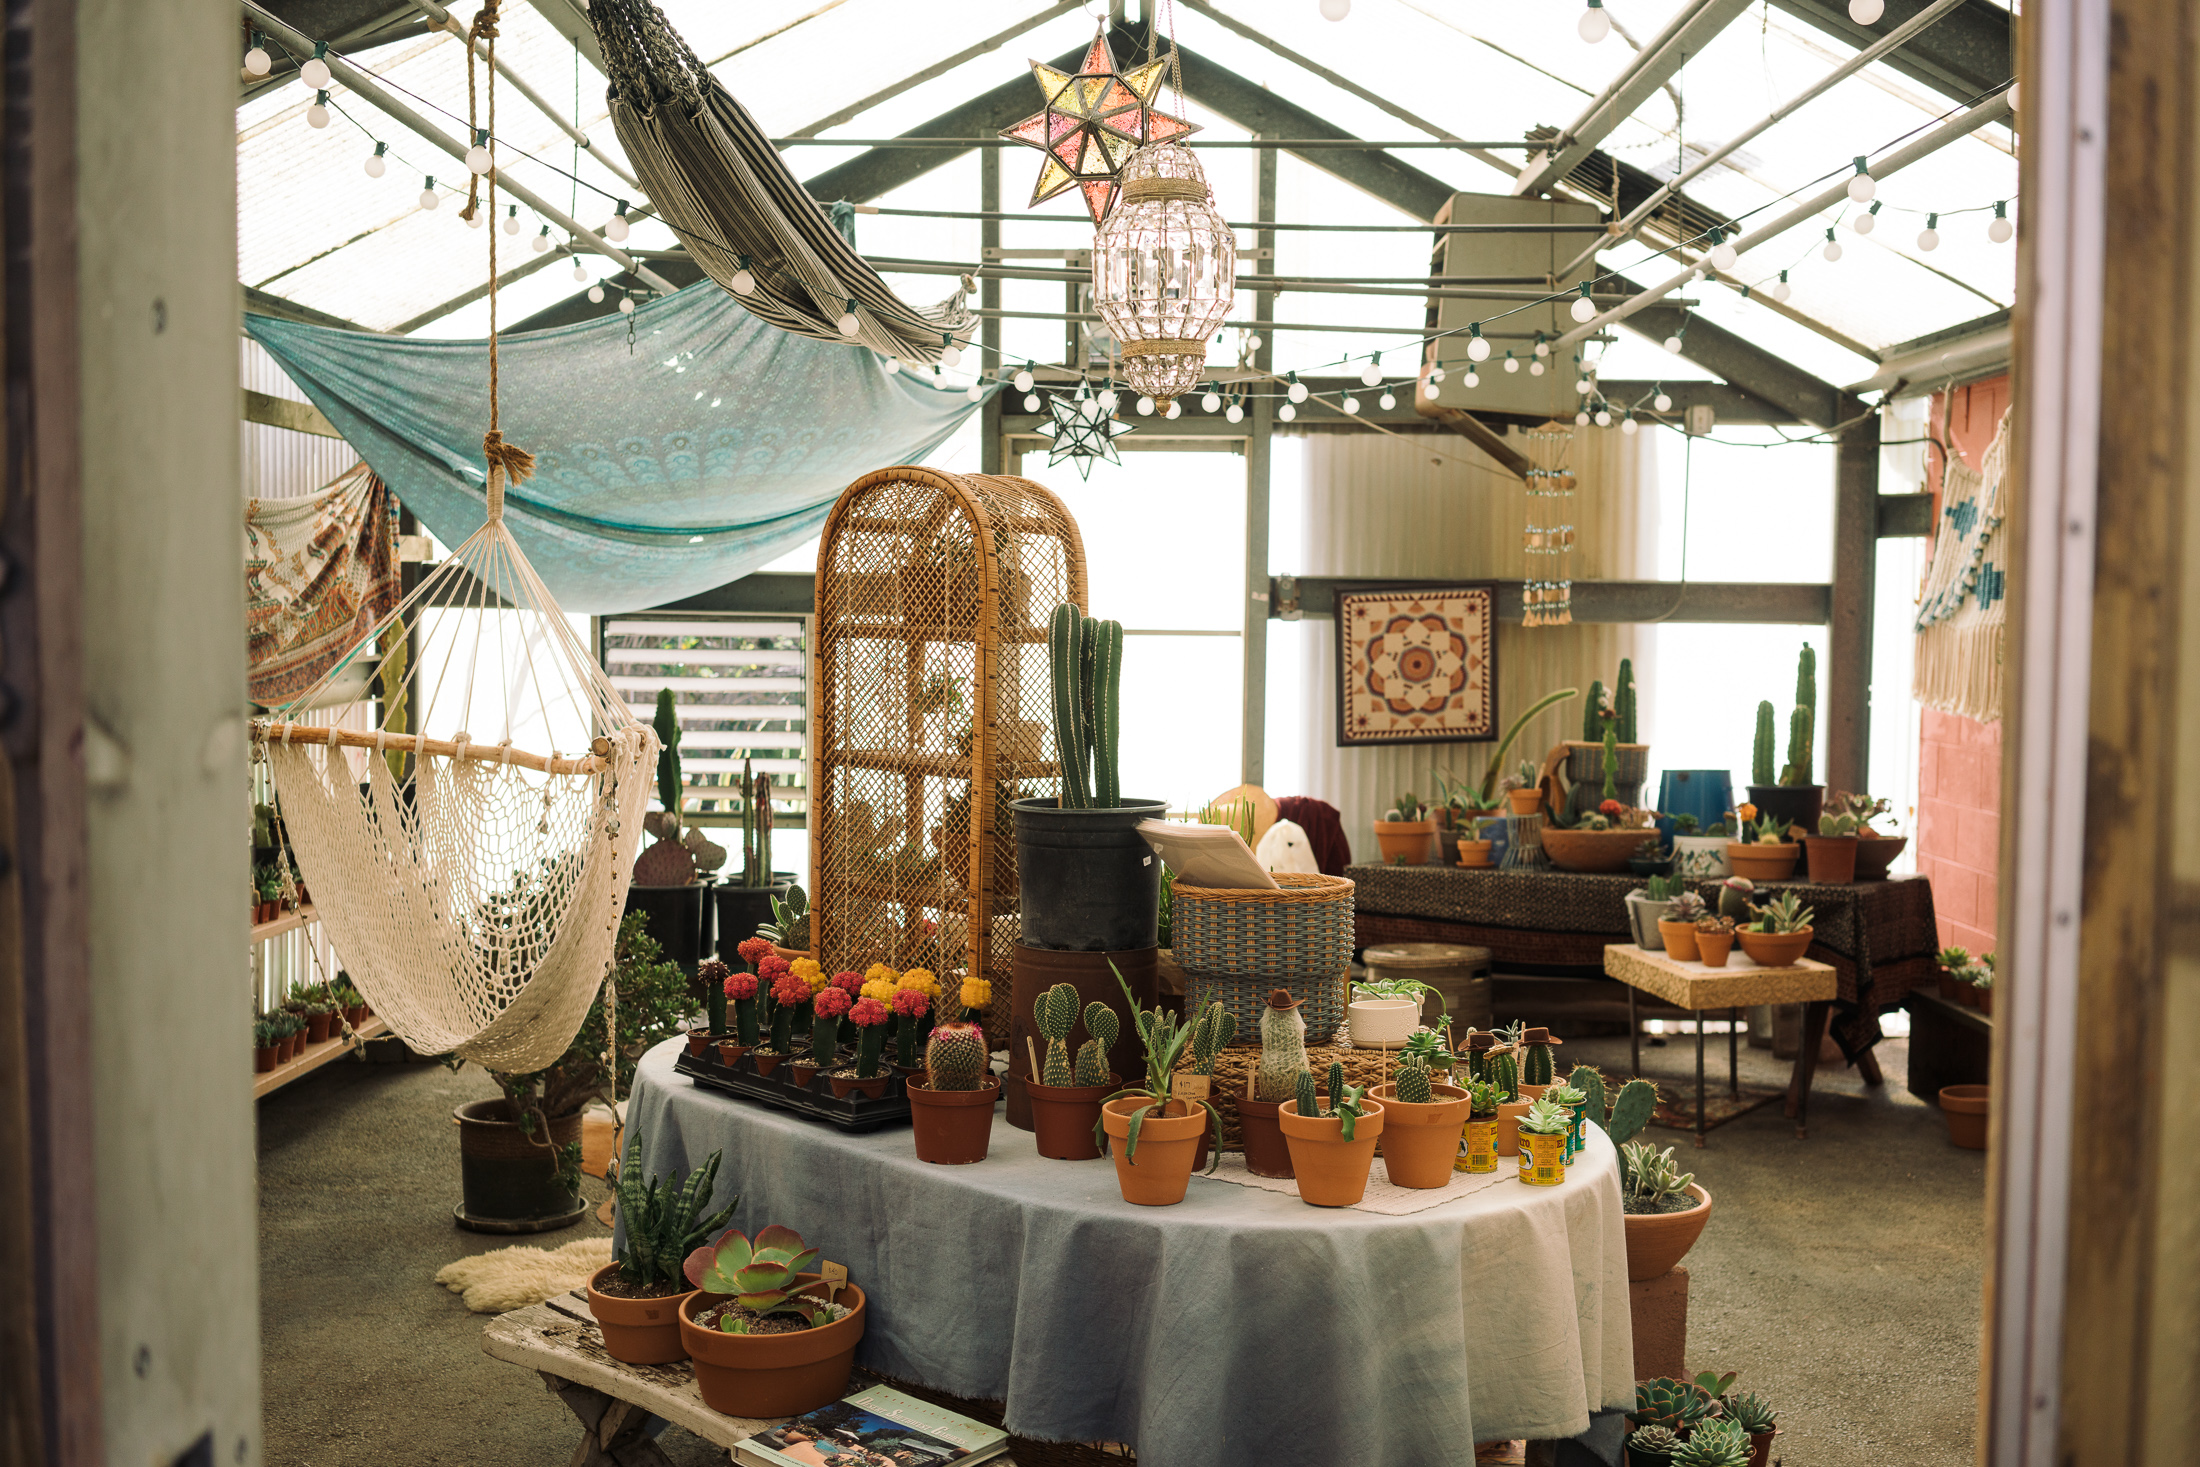 The Cub House shares the building with Prickley Pals, a succulent garden store, owned by Talkington's girlfriend, Carla Alcibar, a former retail merchandiser for Anthropologie and Free People. Alcibar designed The Cub House's layout and does the shop's merchandising.